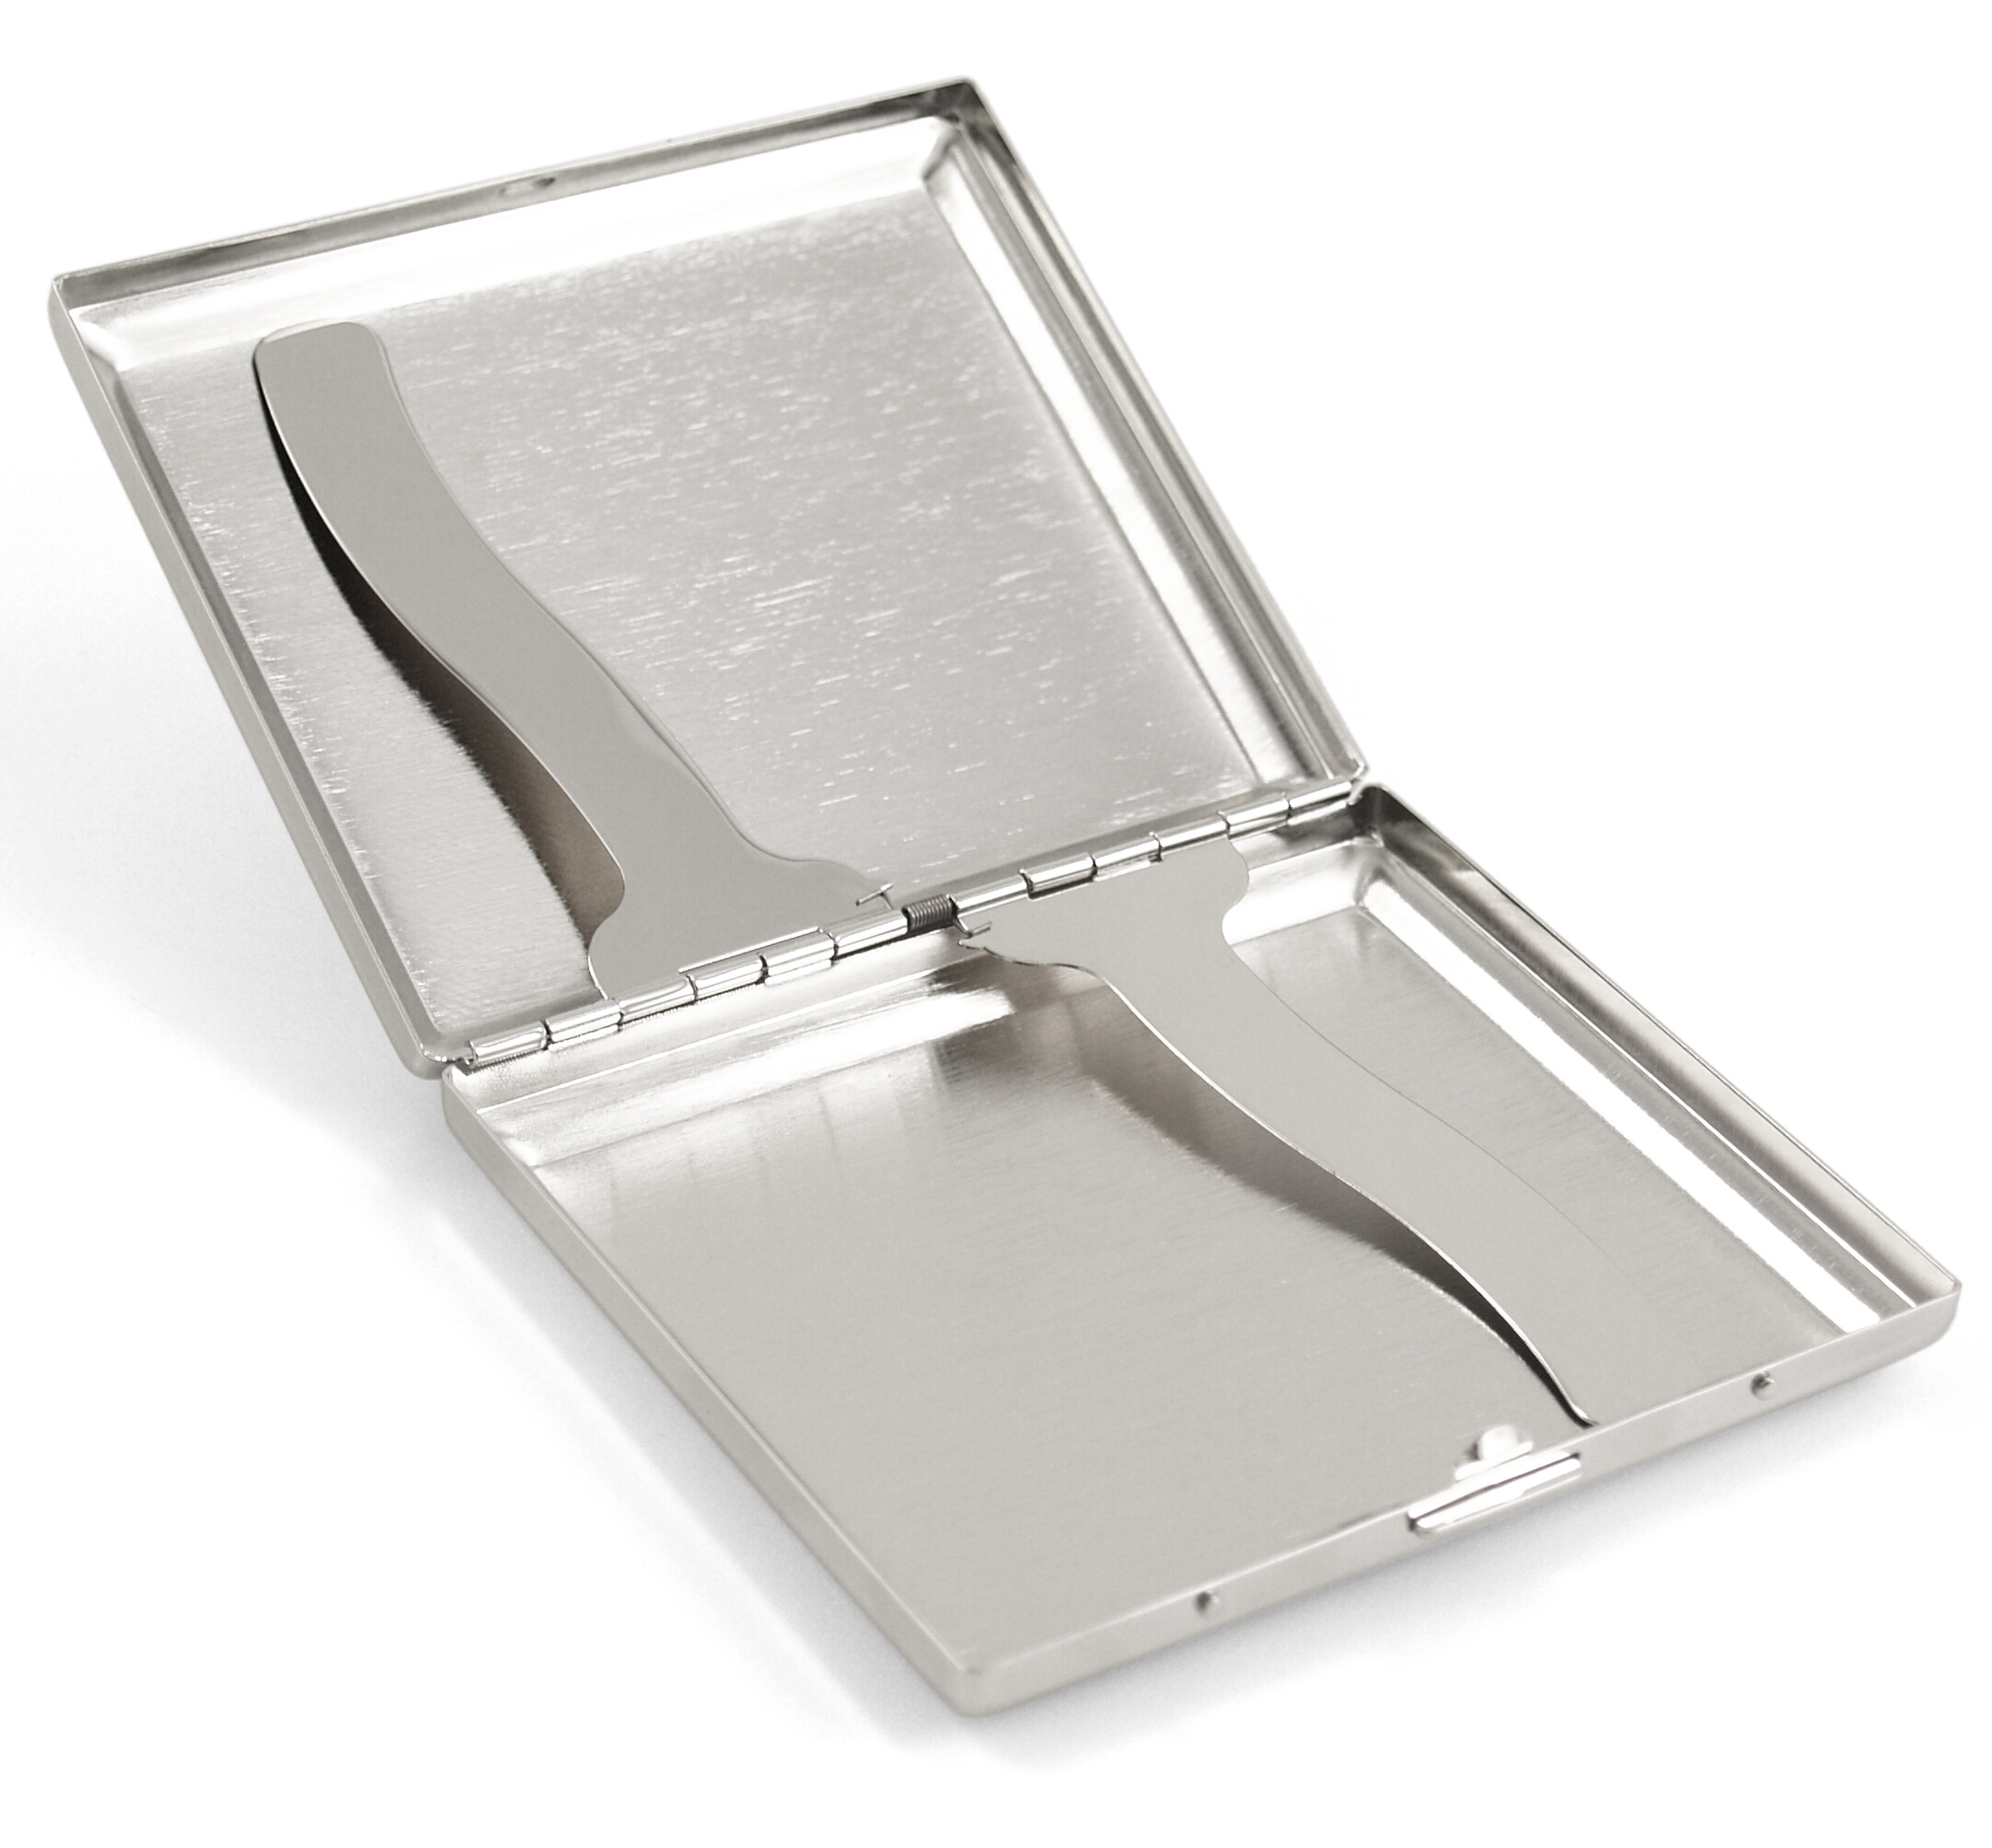 Grid Stripes Stainless Steel Cigarette Case Holder